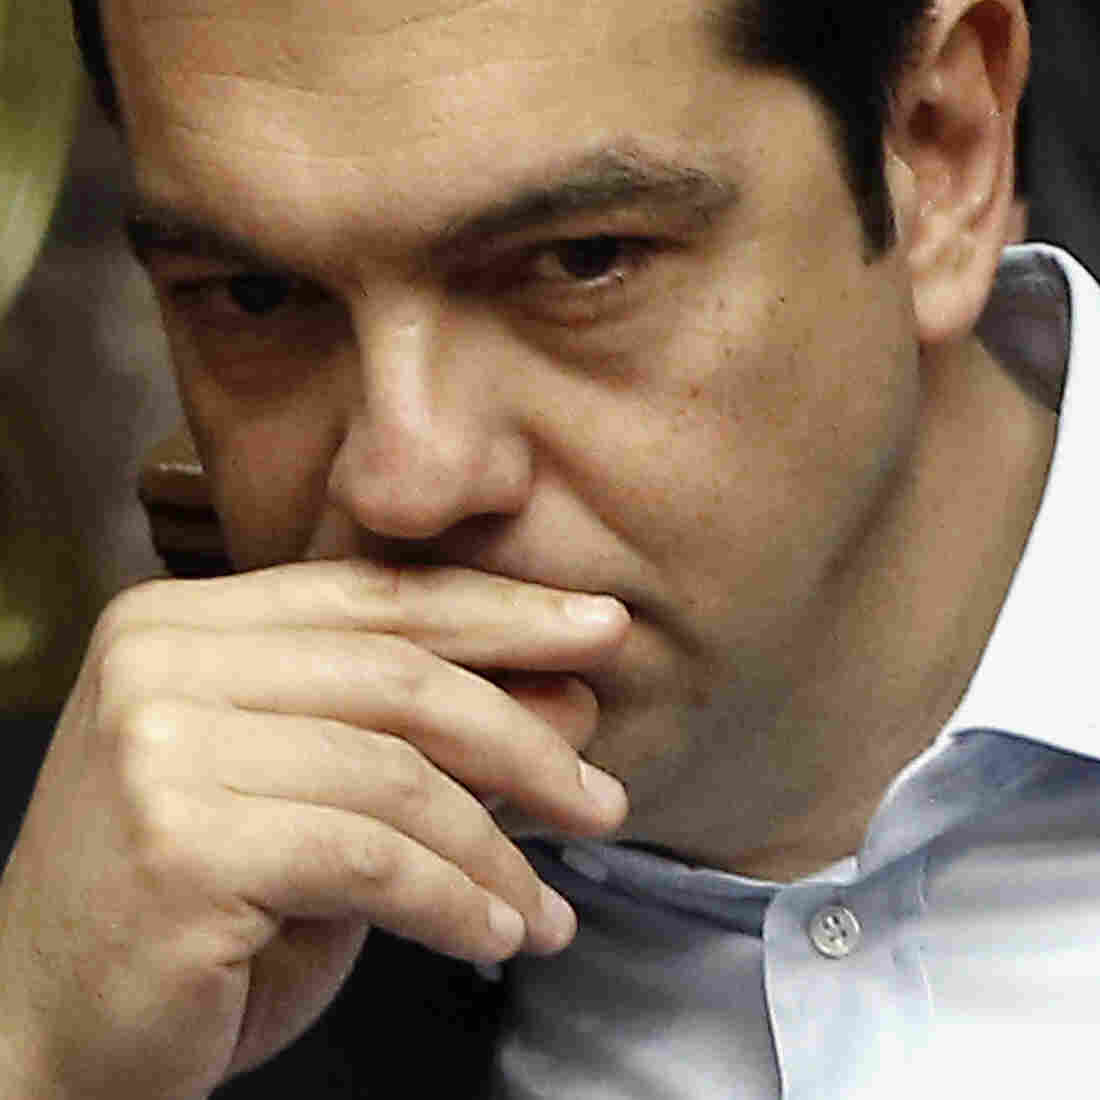 Greece's Prime Minister Alexis Tsipras attends an emergency Parliament session for the government's proposed referendum in Athens on June 27.